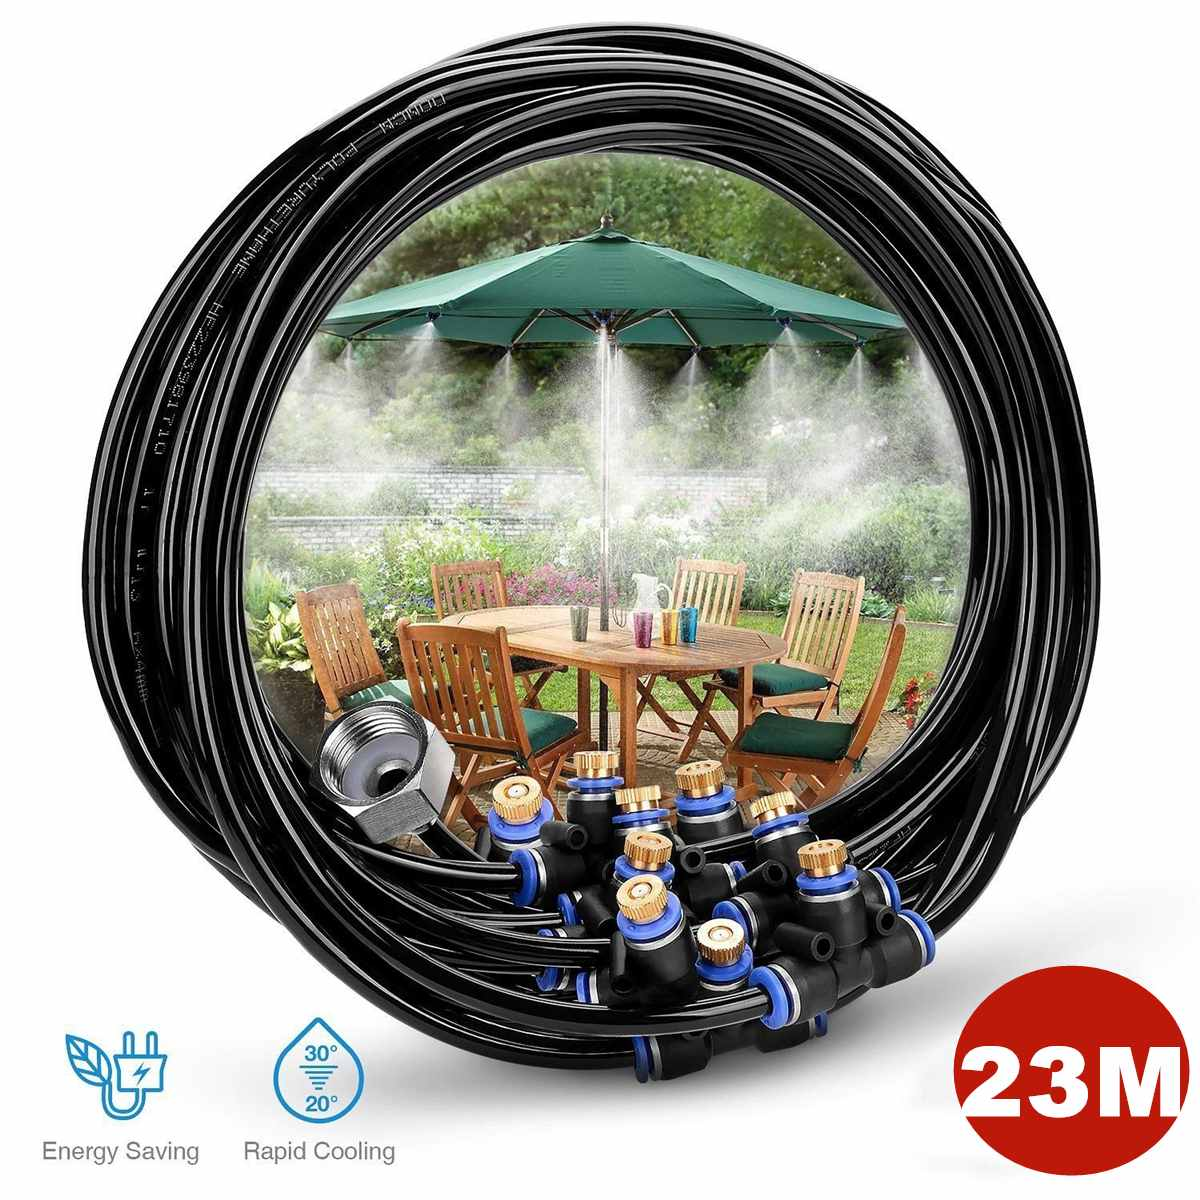 Irrigation Tools Outdoor Garden Sprinkler Watering Kit Patio Cooling System Water Spray Misting Atomizer 23M Line 3/4 Connector